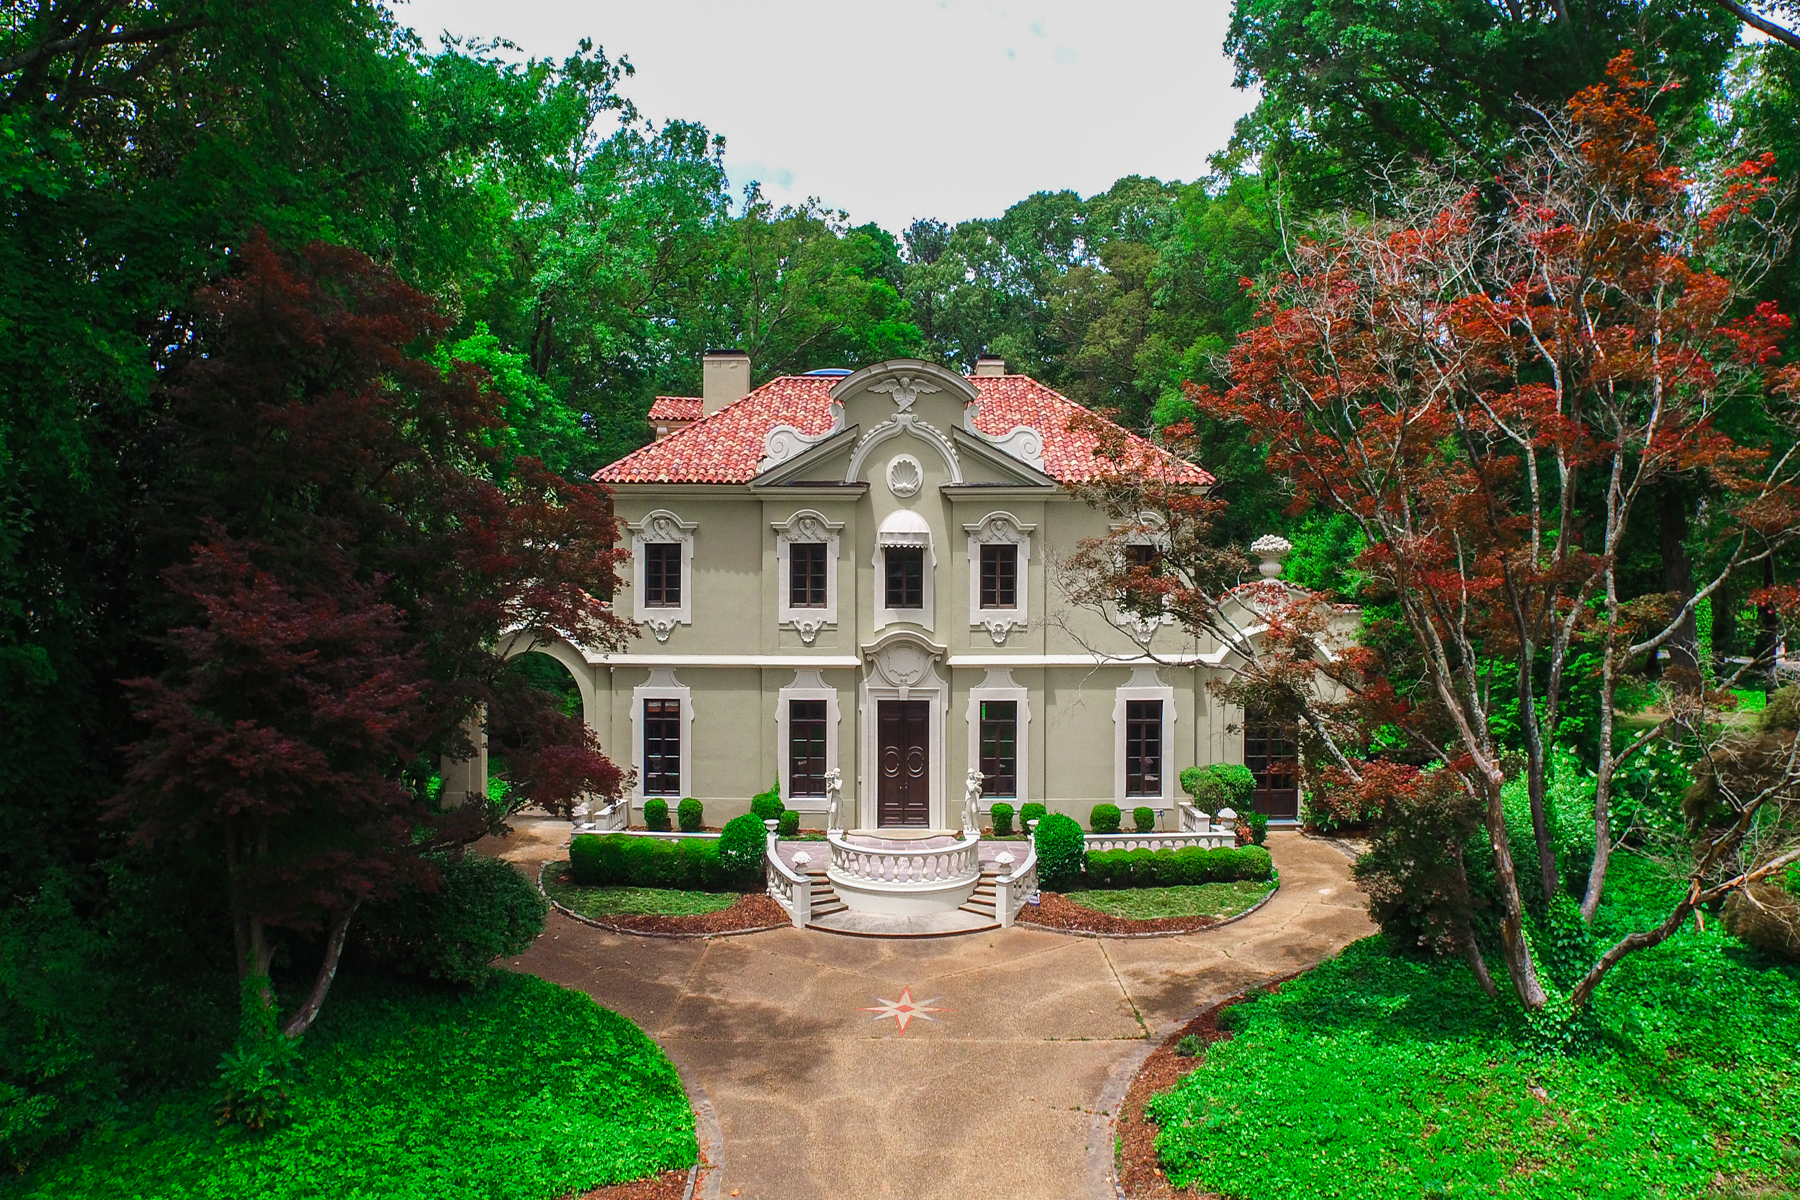 Maison unifamiliale pour l Vente à Classic Elegance In Atlanta's Finest Neighborhood 541 W Paces Ferry Road NW Buckhead, Atlanta, Georgia 30305 États-Unis